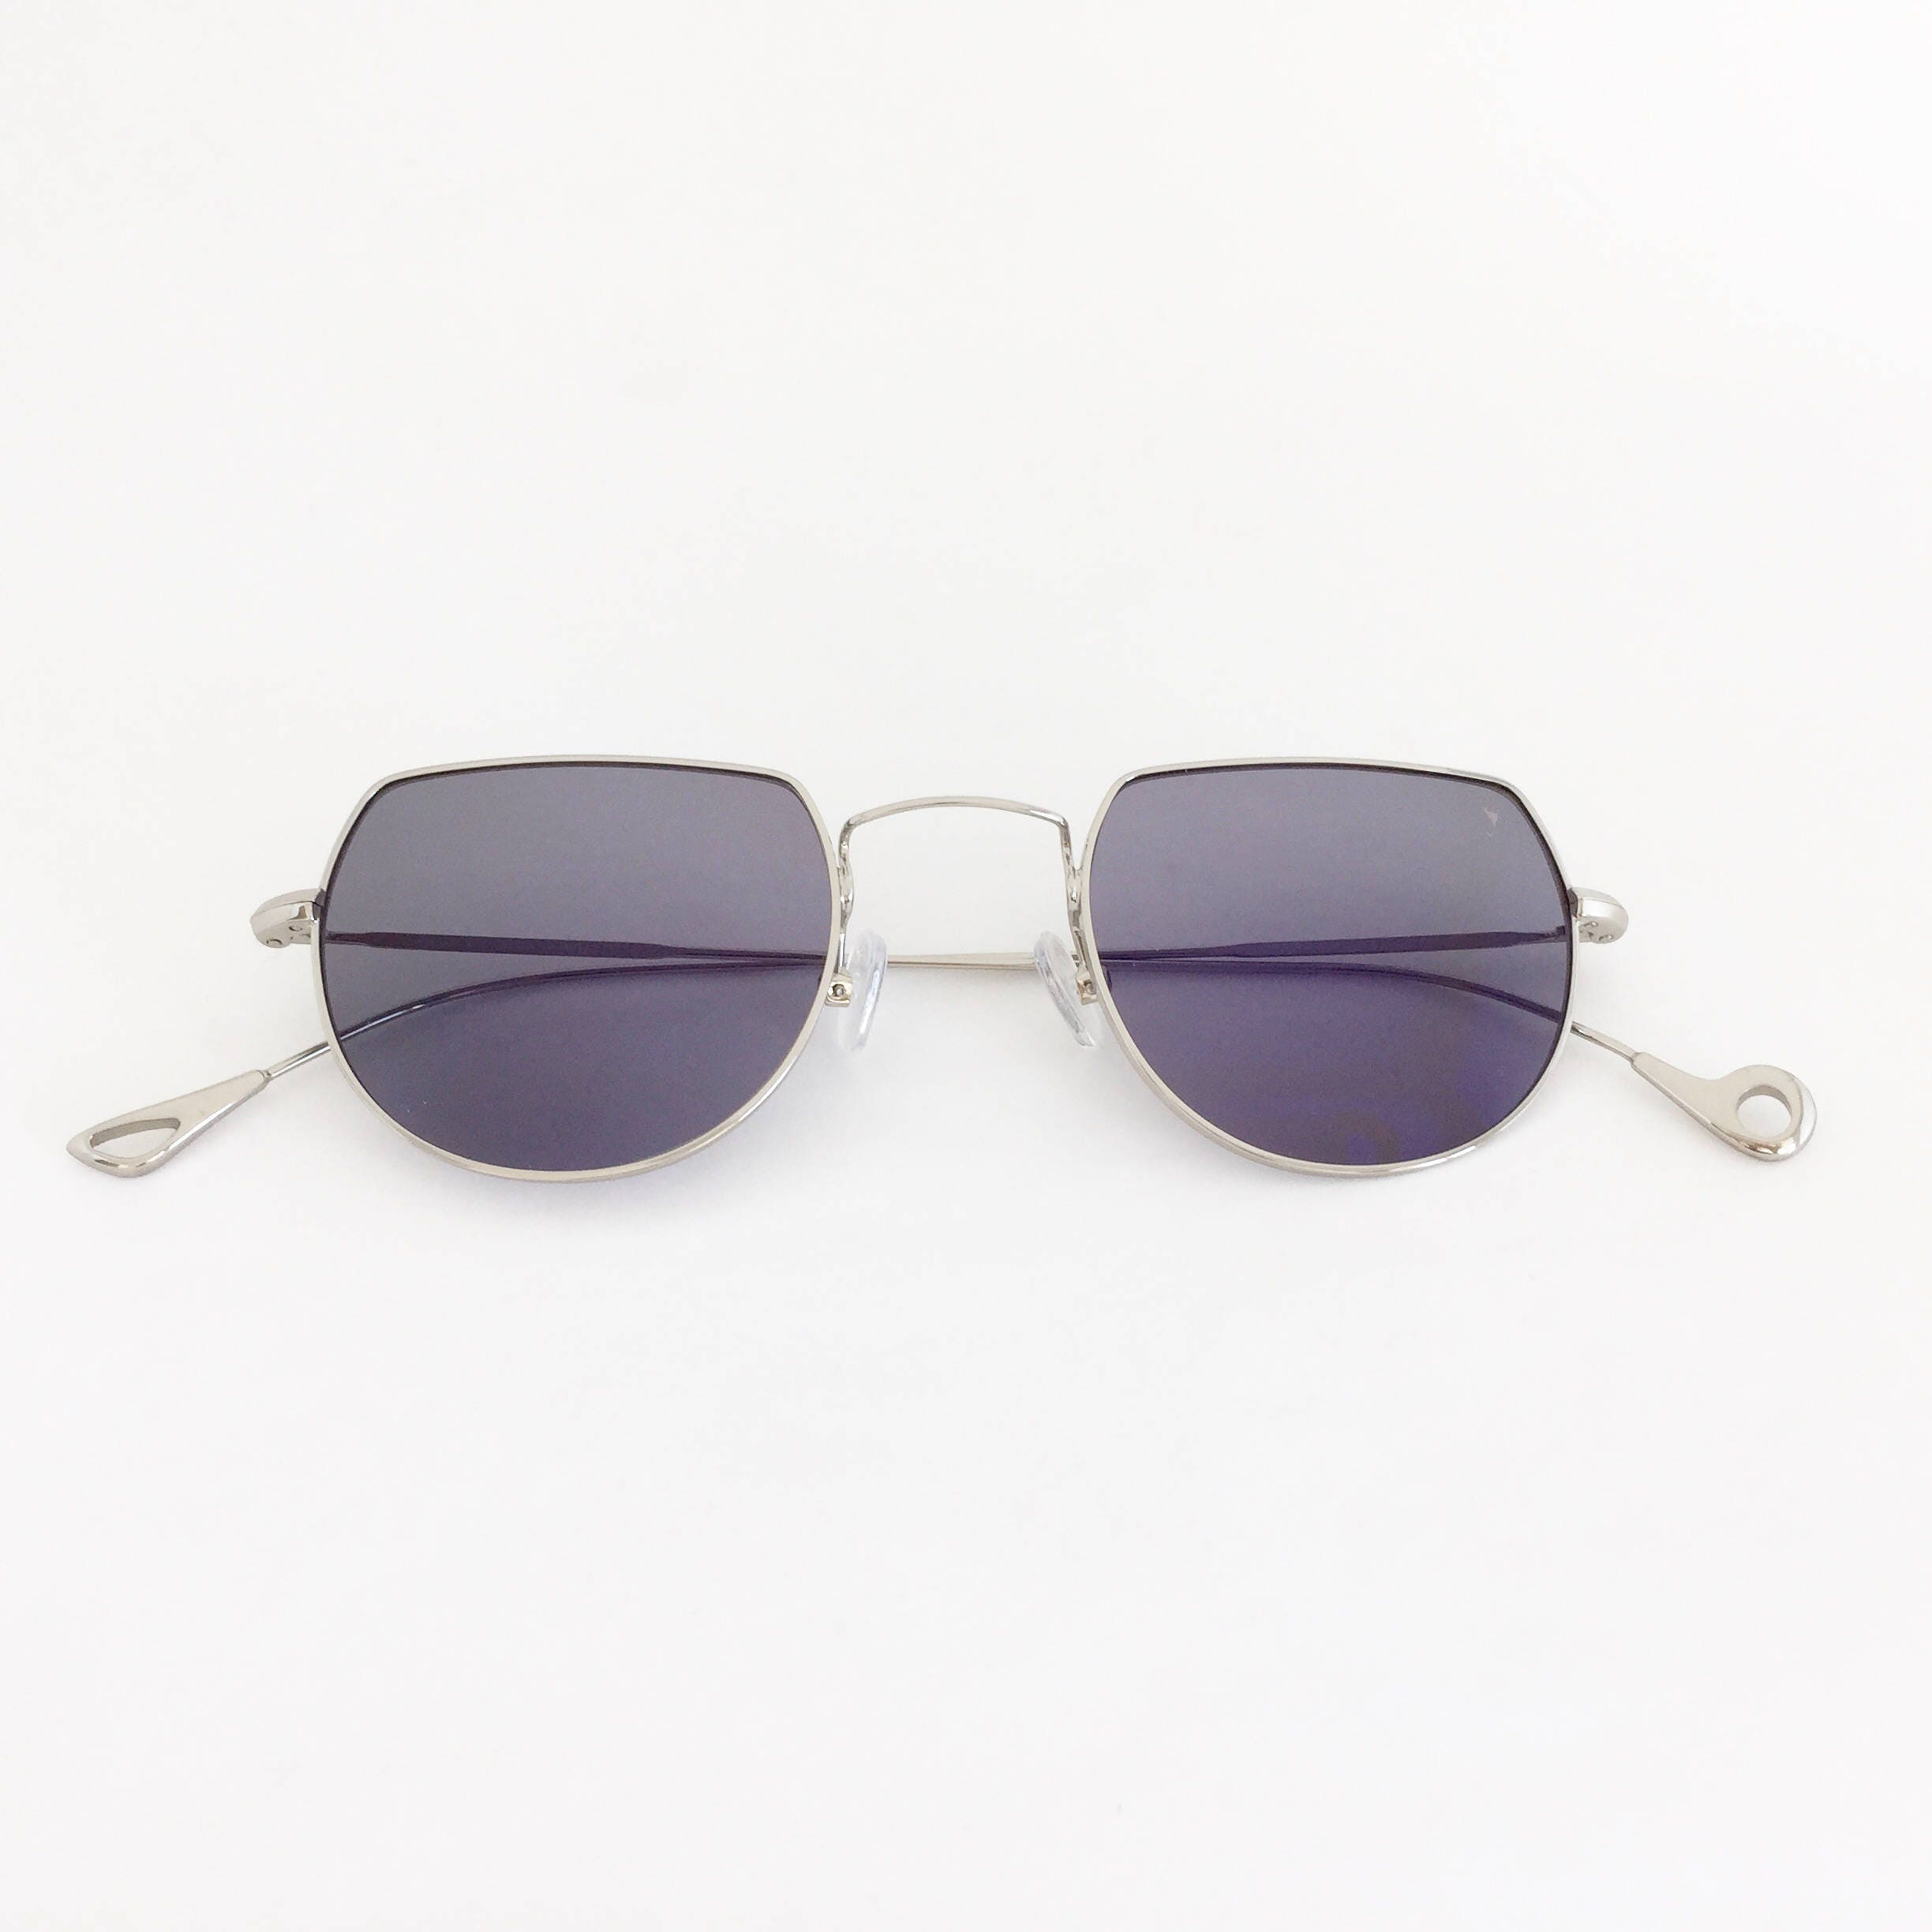 LIMITED EDITION Eyepetizer Opera Sunglasses Silver Frame Blue